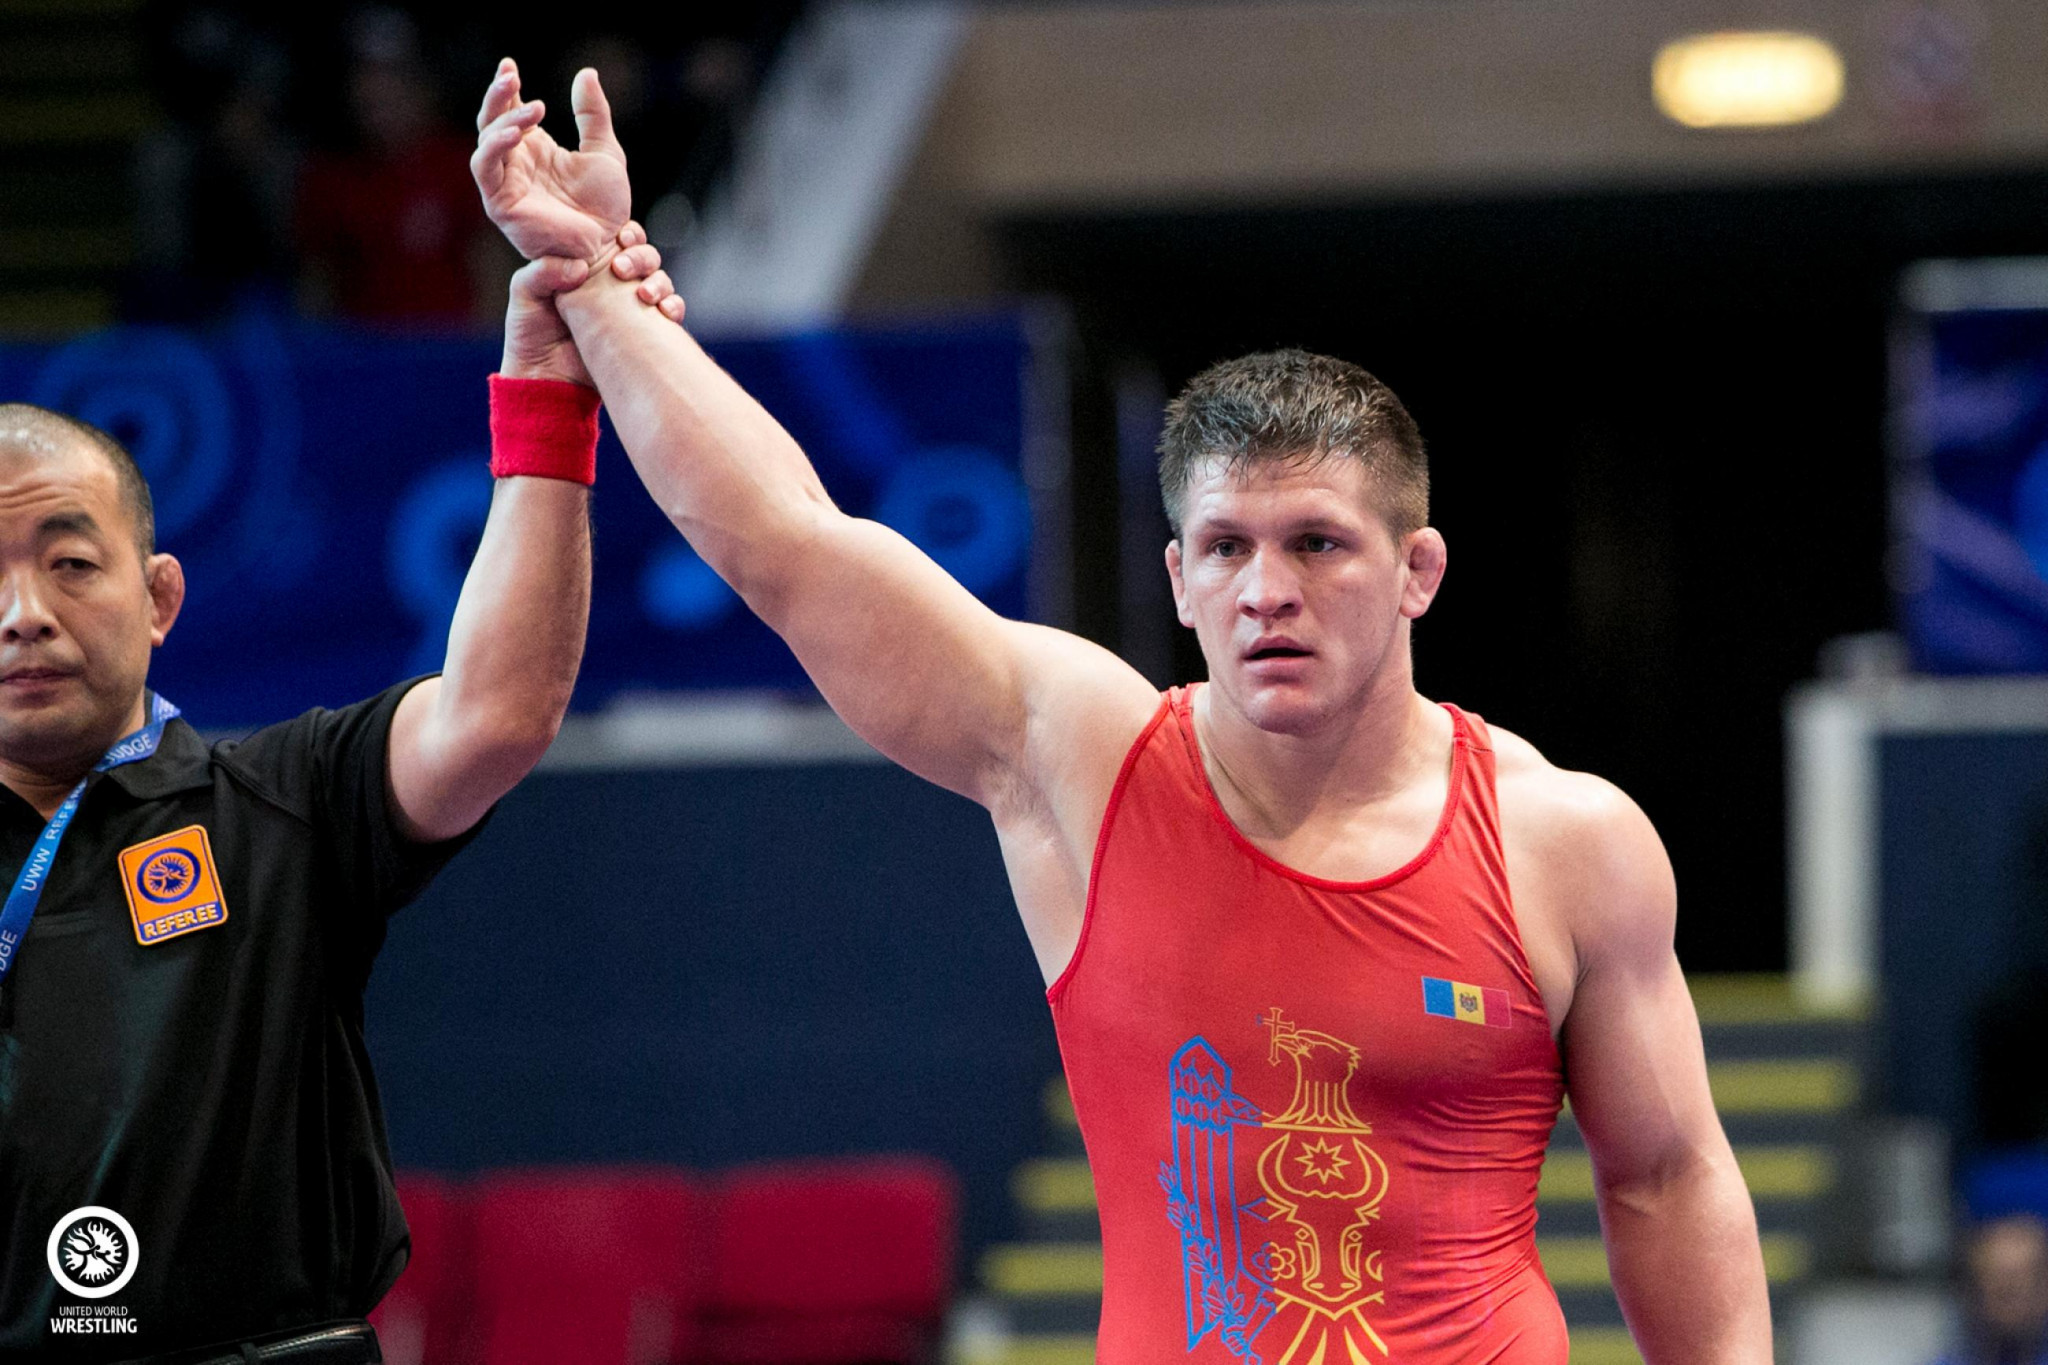 Cataraga earns unique golden double at UWW Under-23 World Championships